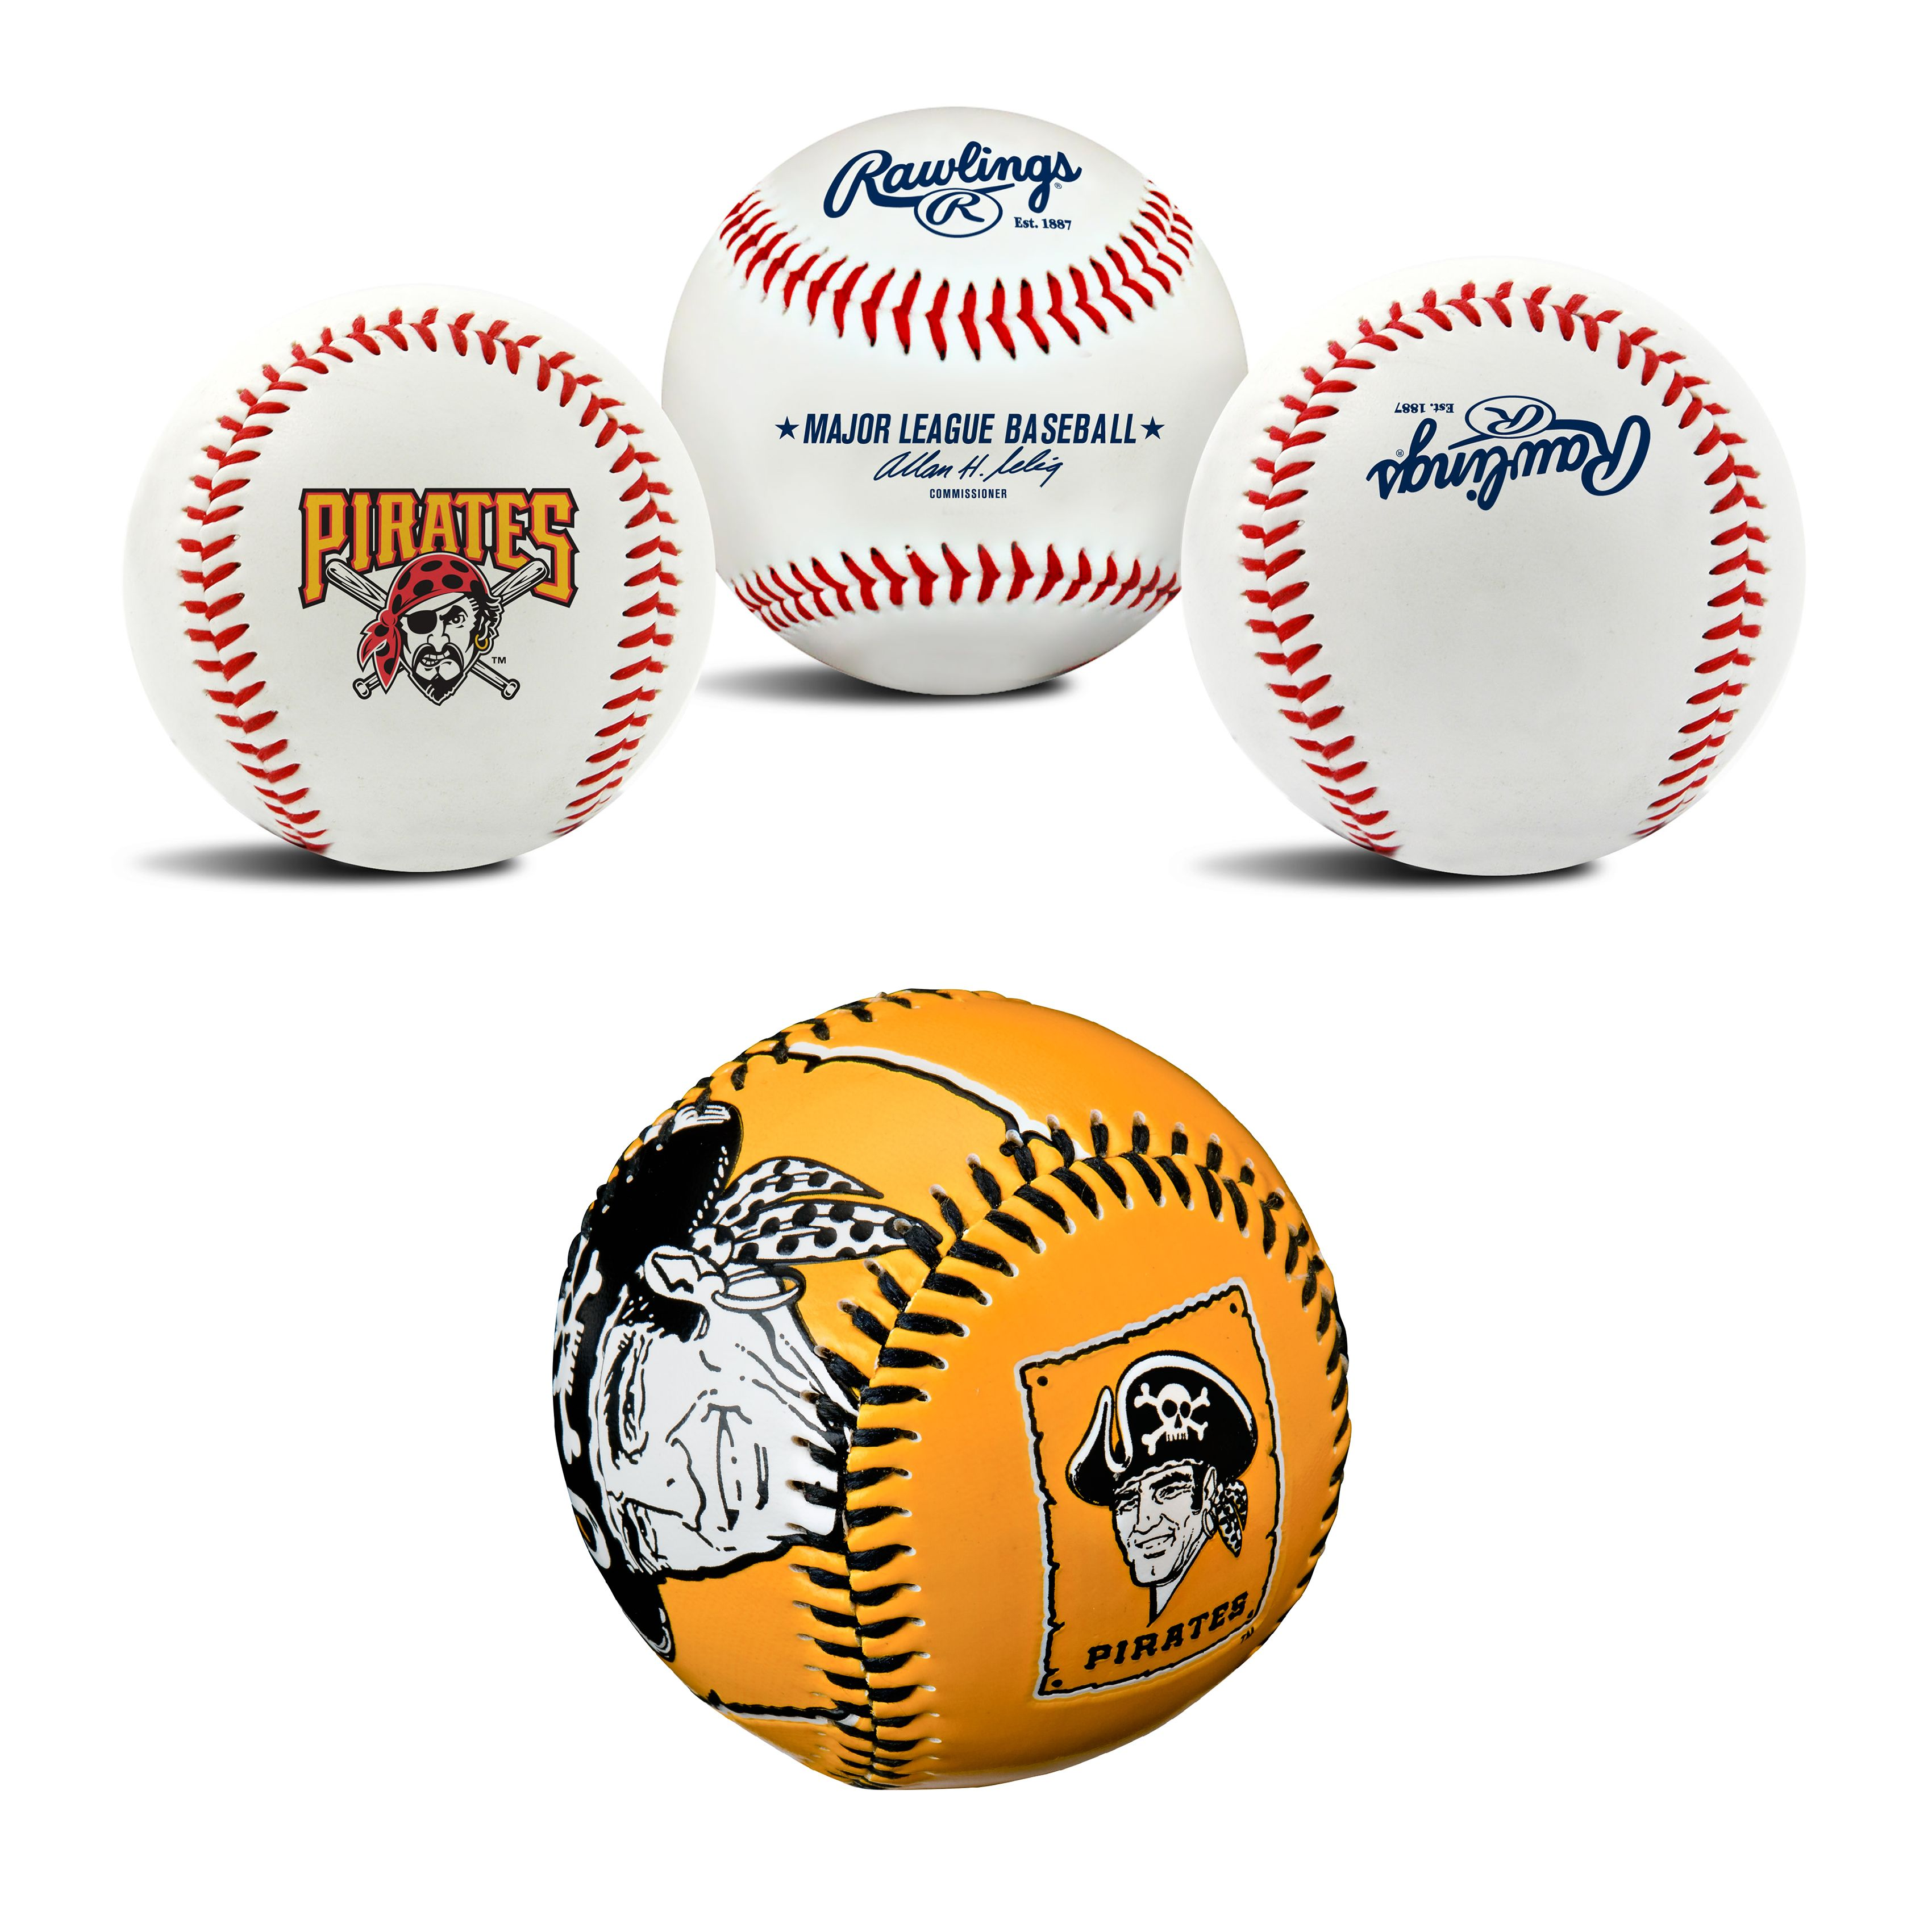 Pittsburgh Pirates MLB Retro and Team Logo Authentic Baseballs Bundle 2 Pack